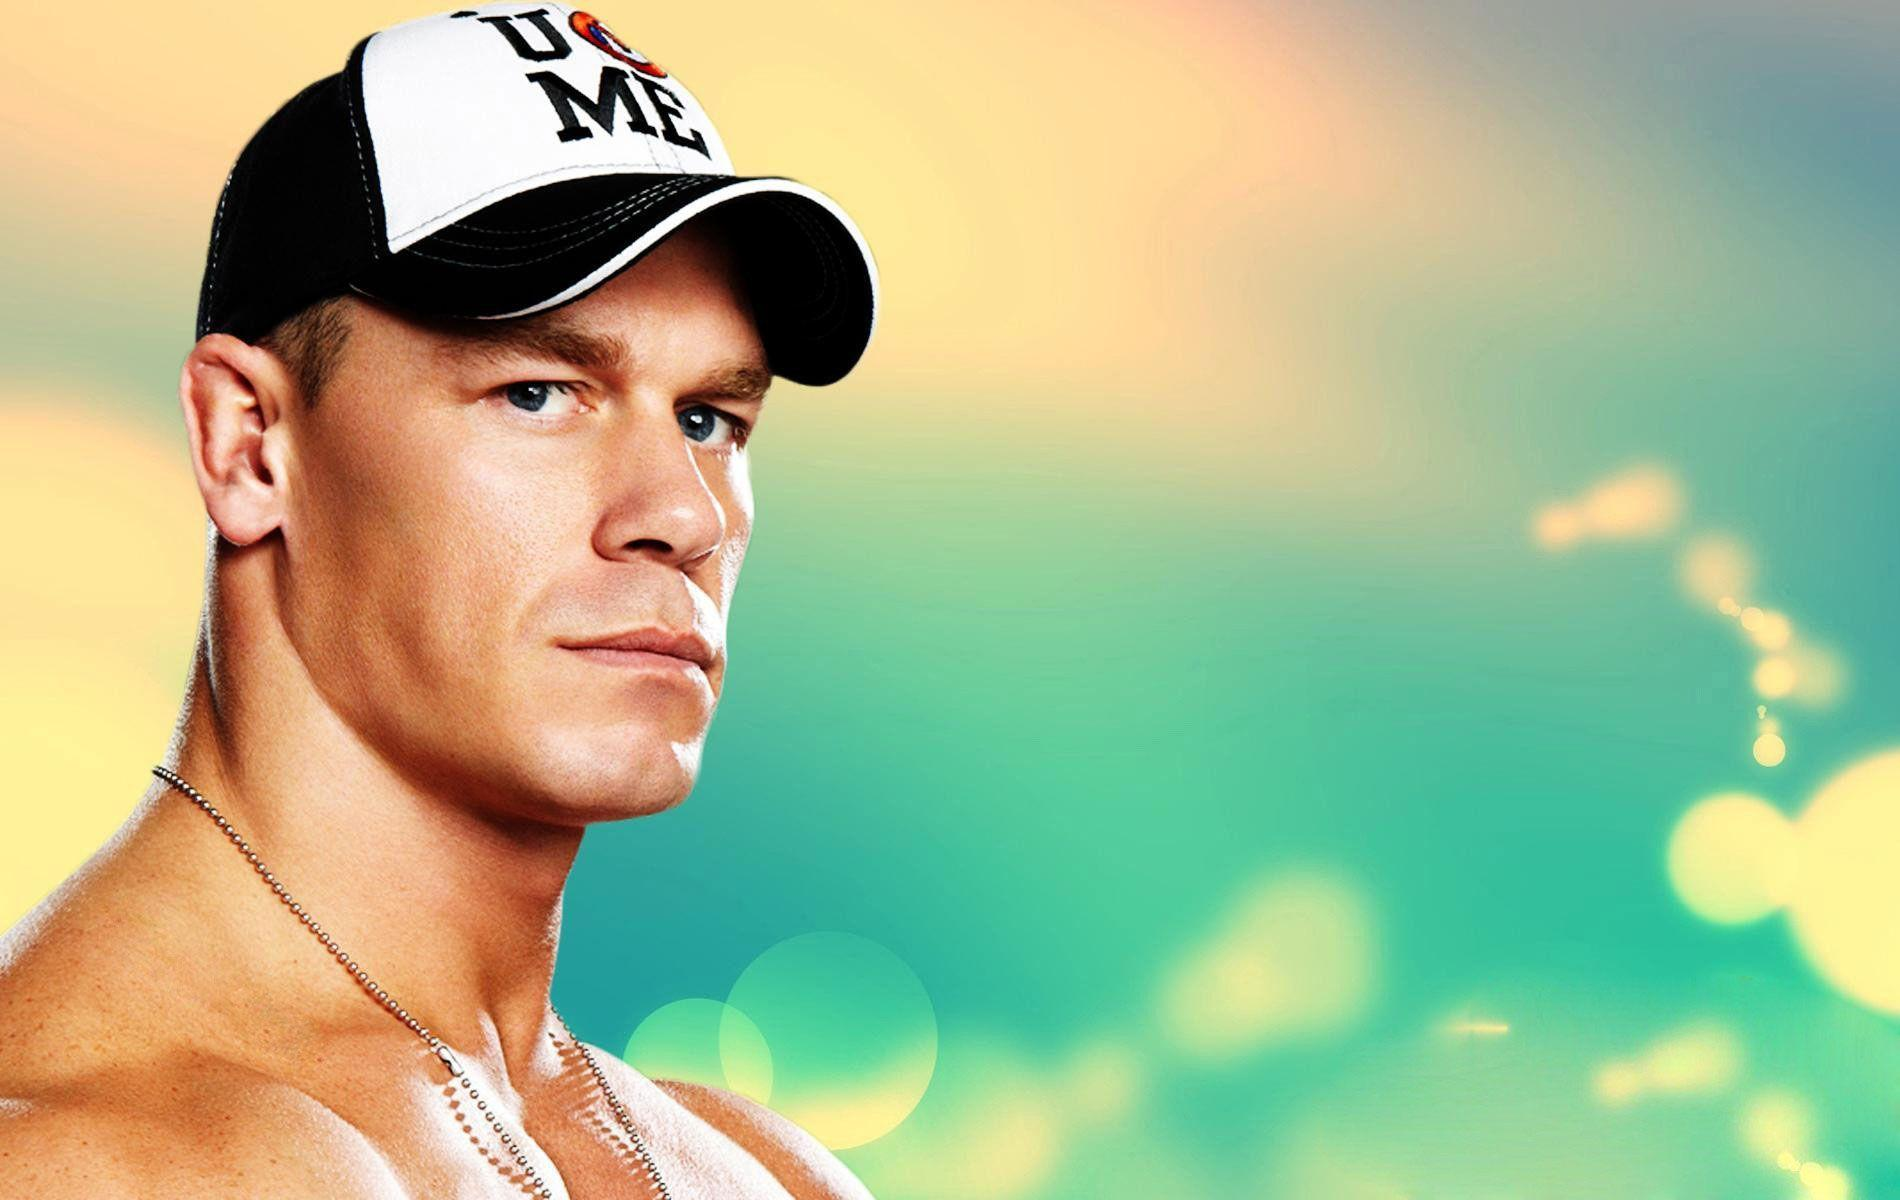 wwe wallpapers hd 2015 wallpaper cave